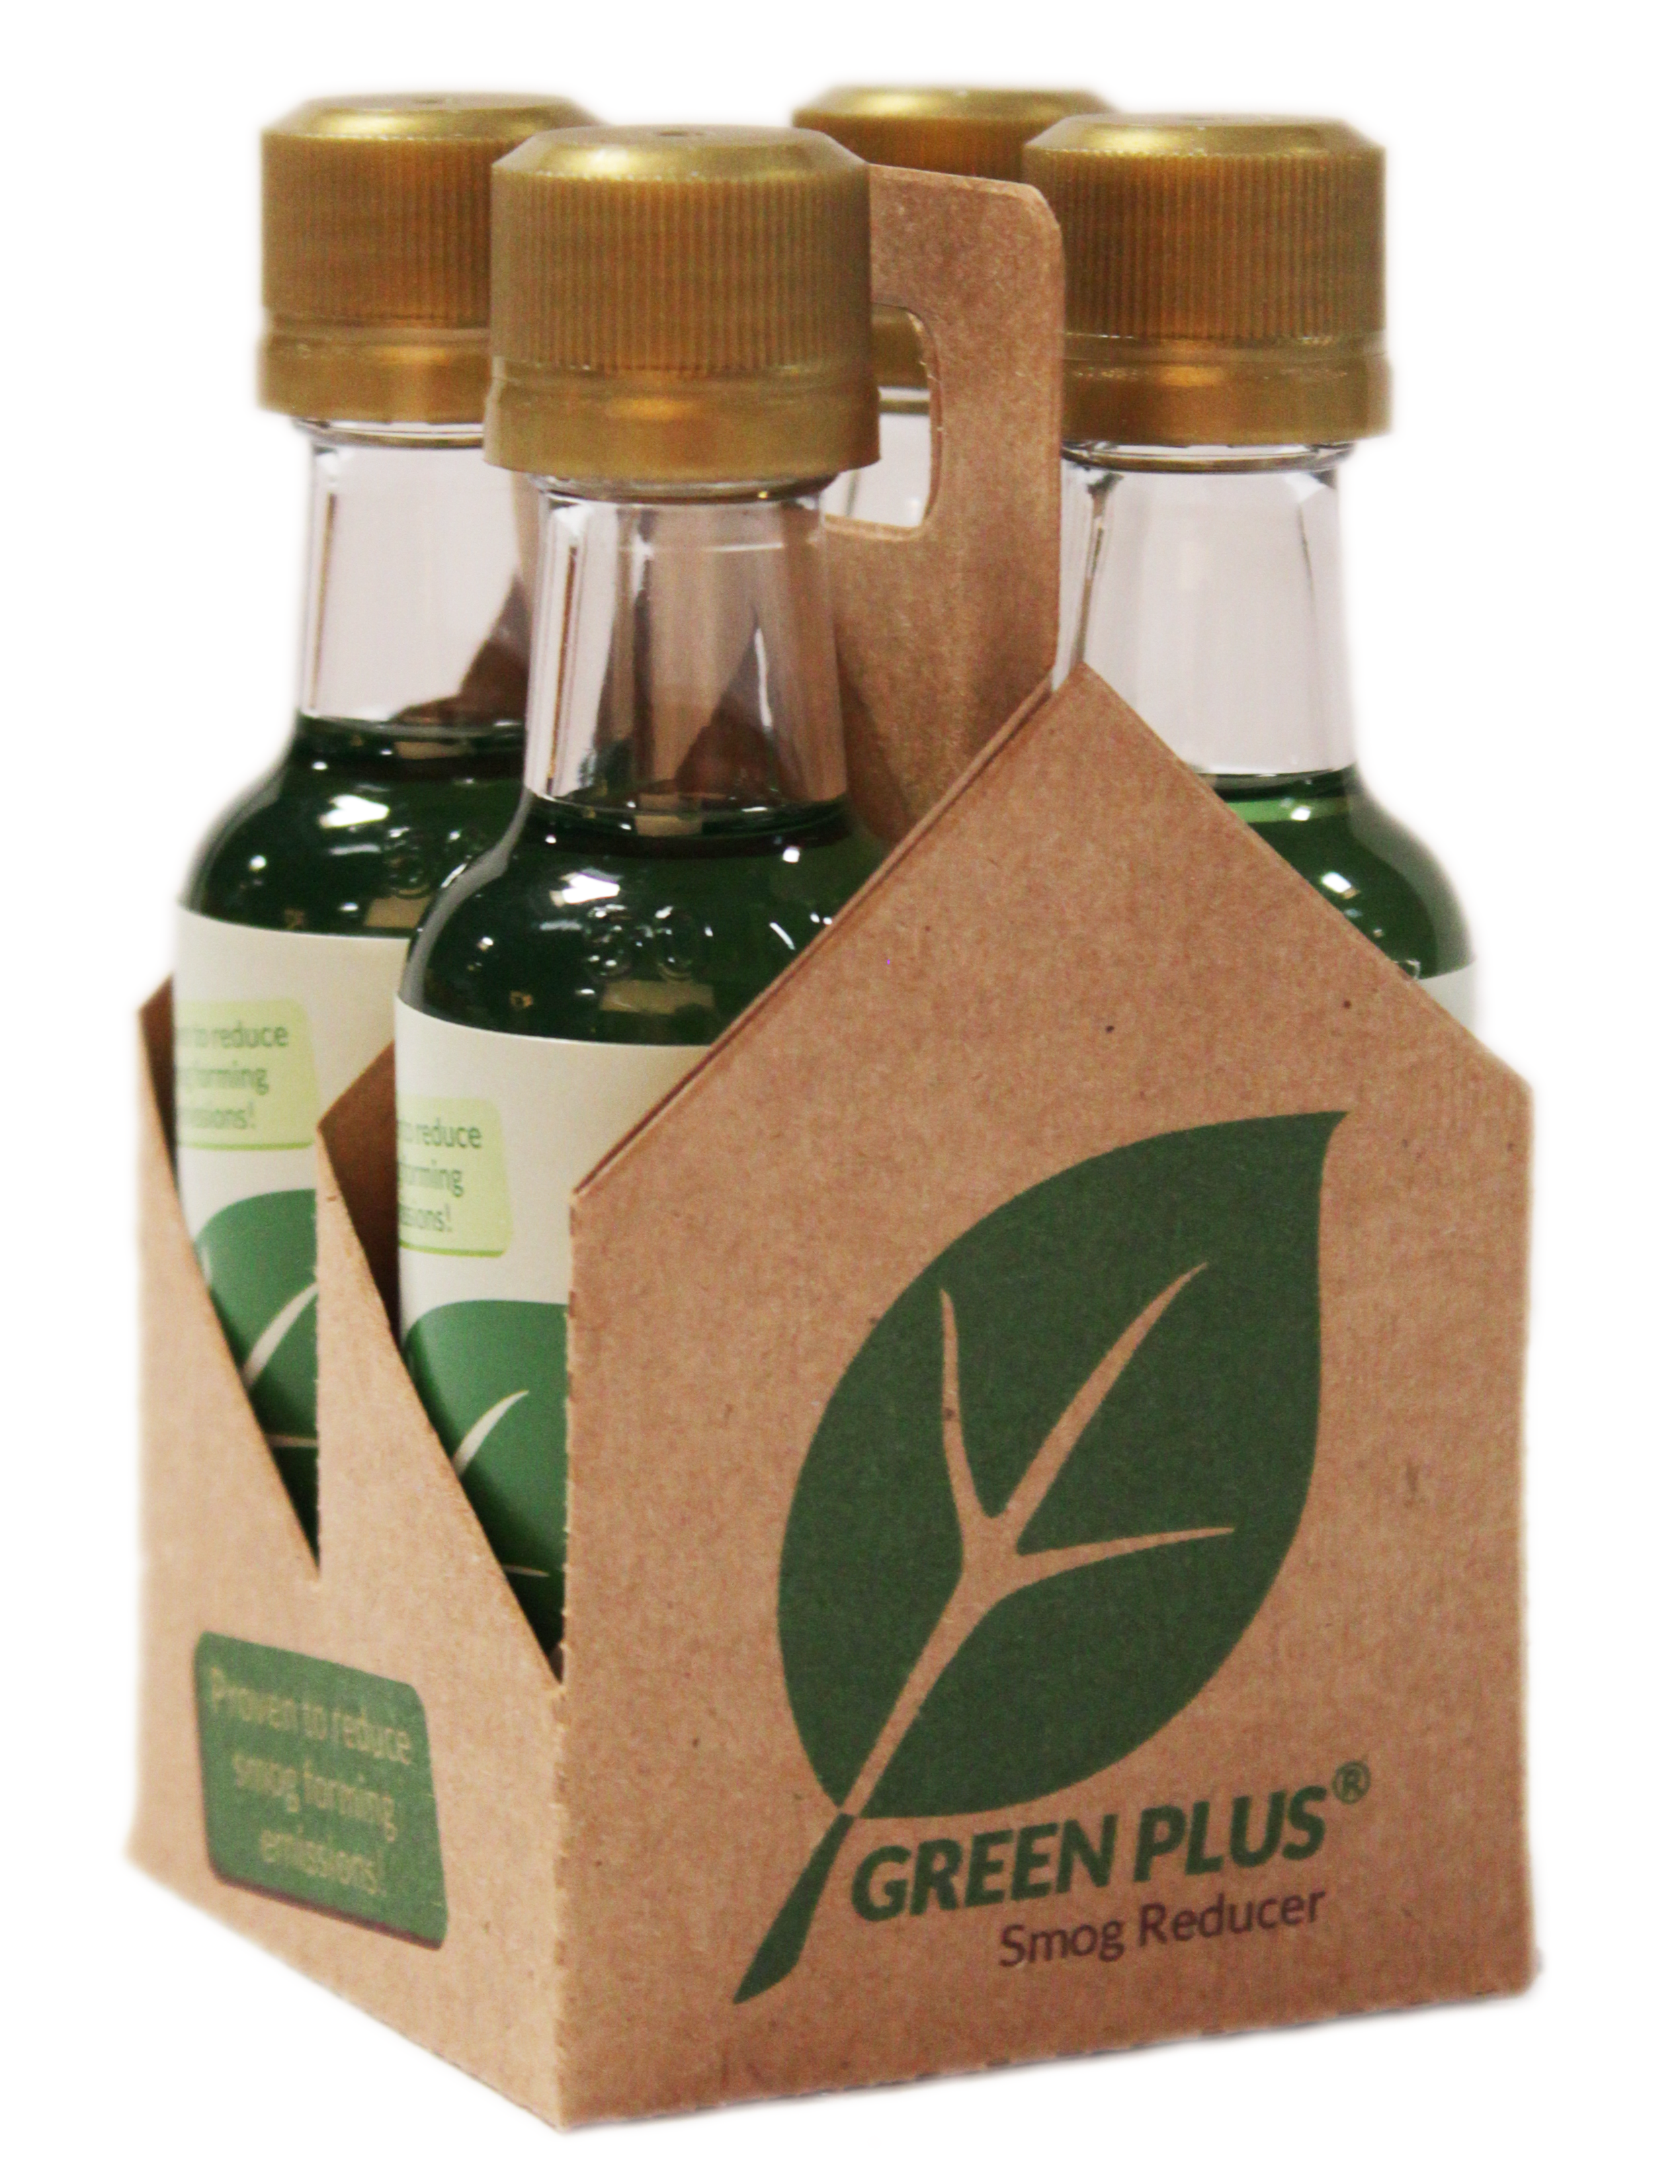 Green Plus - Main Product Image